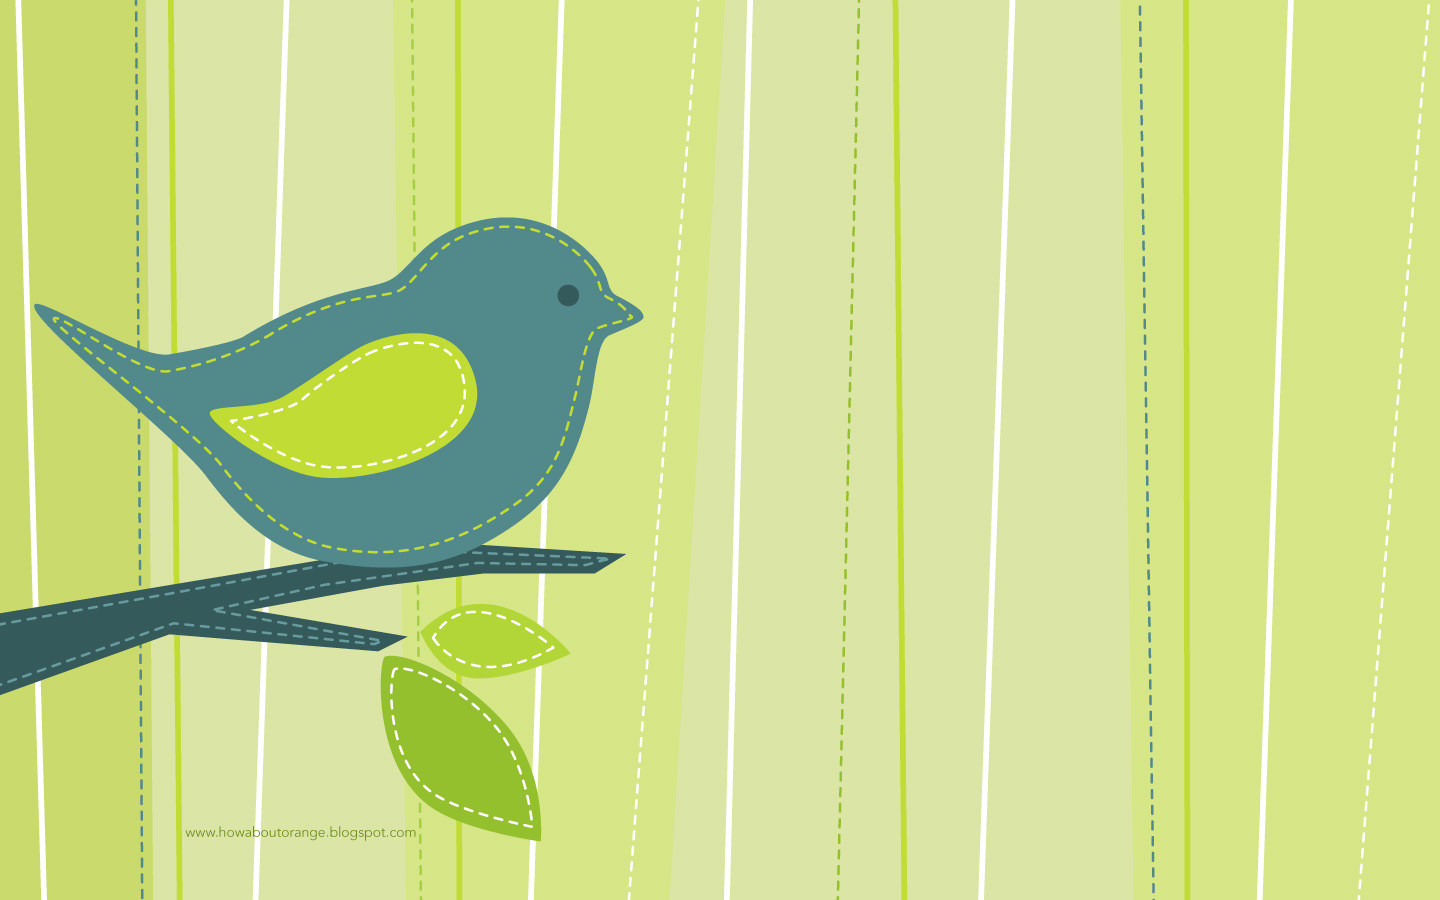 Bird Wallpaper Designs August wallpapers 1440x900